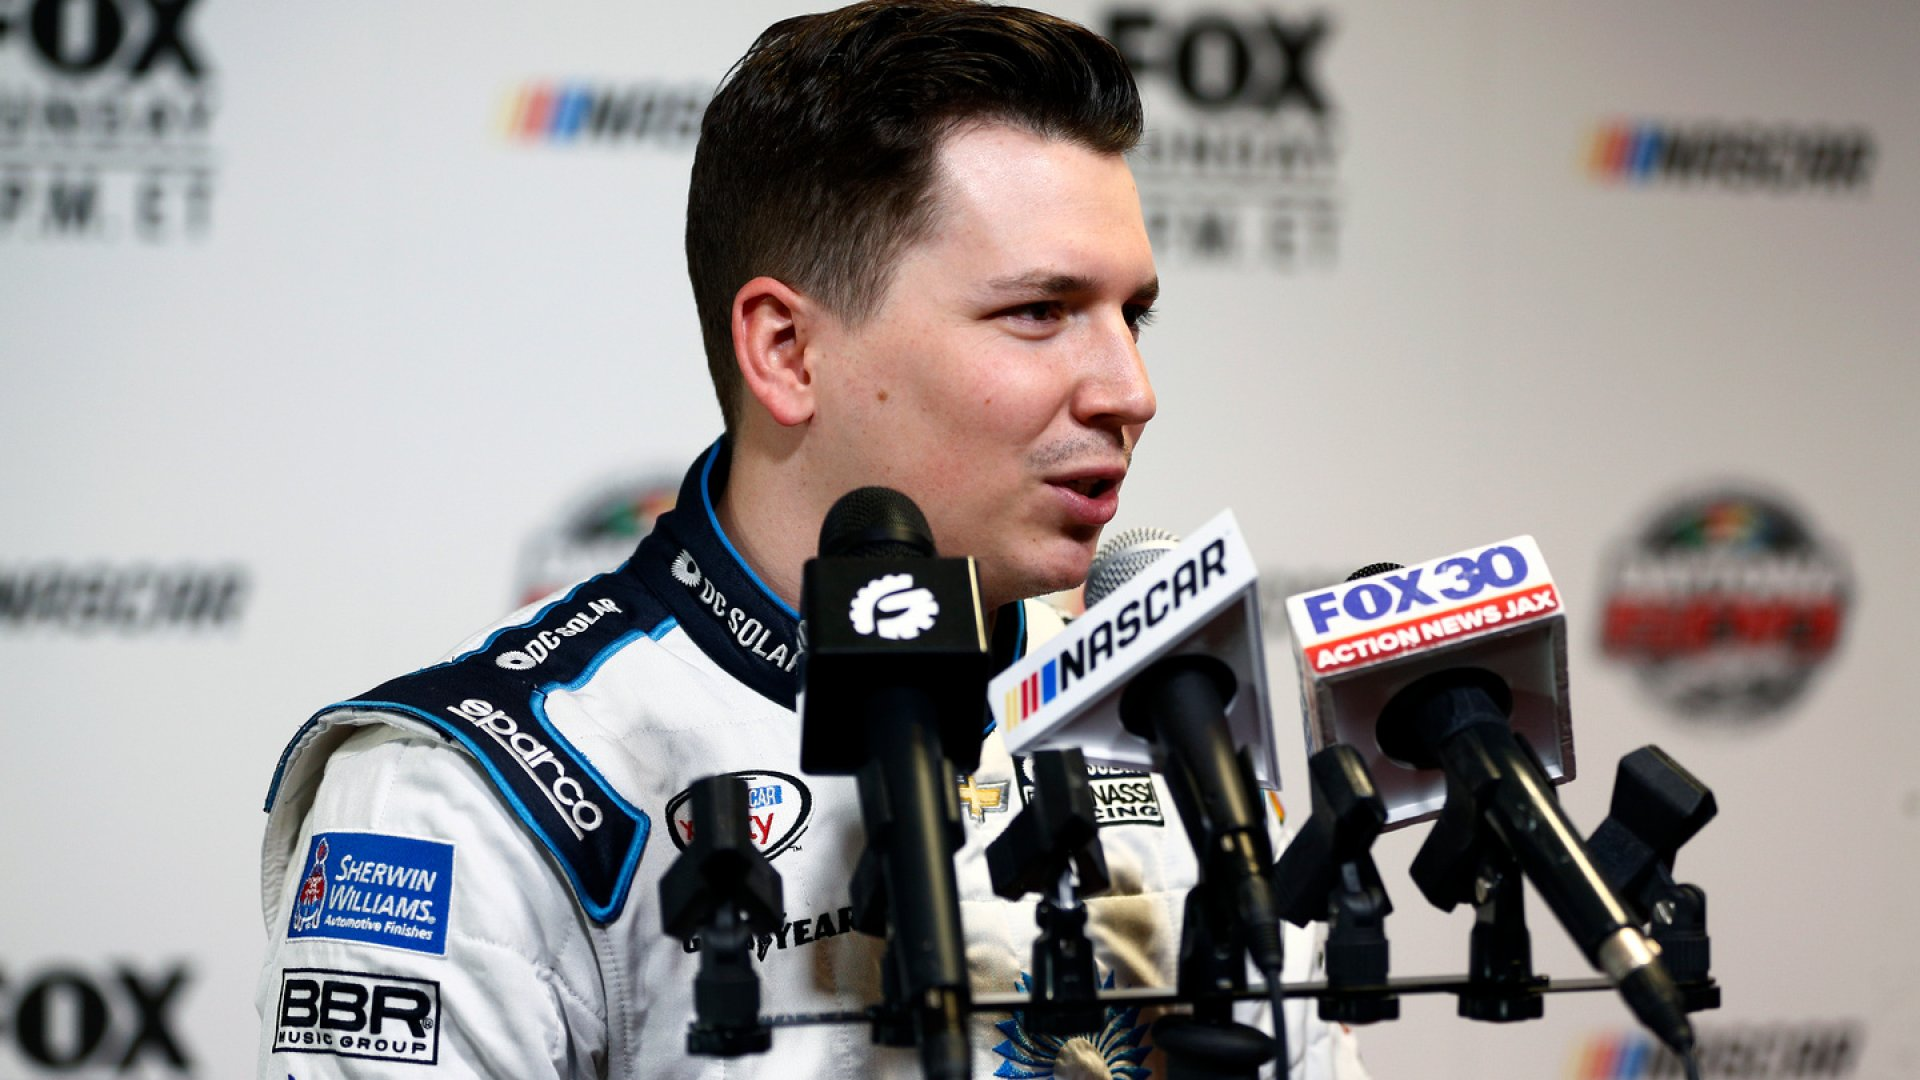 How to Use Video to Build a Personal Brand: NASCAR Driver Brennan Poole